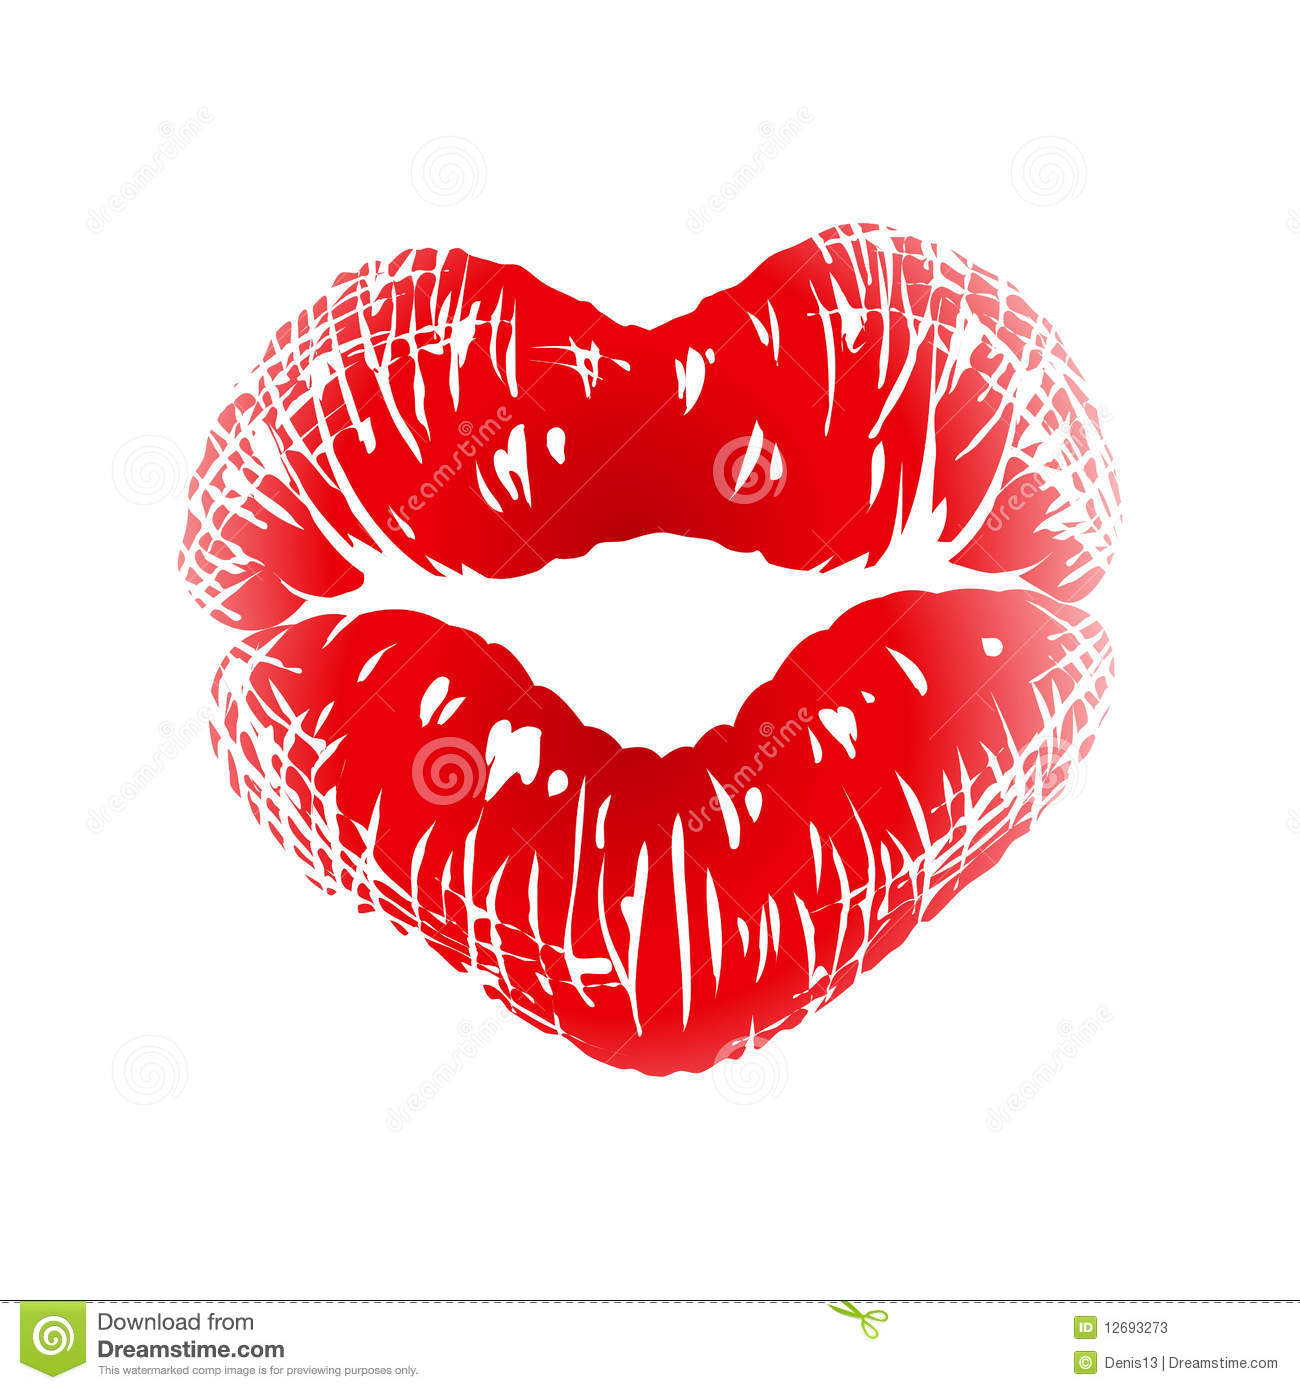 Kiss print in the shape of heart